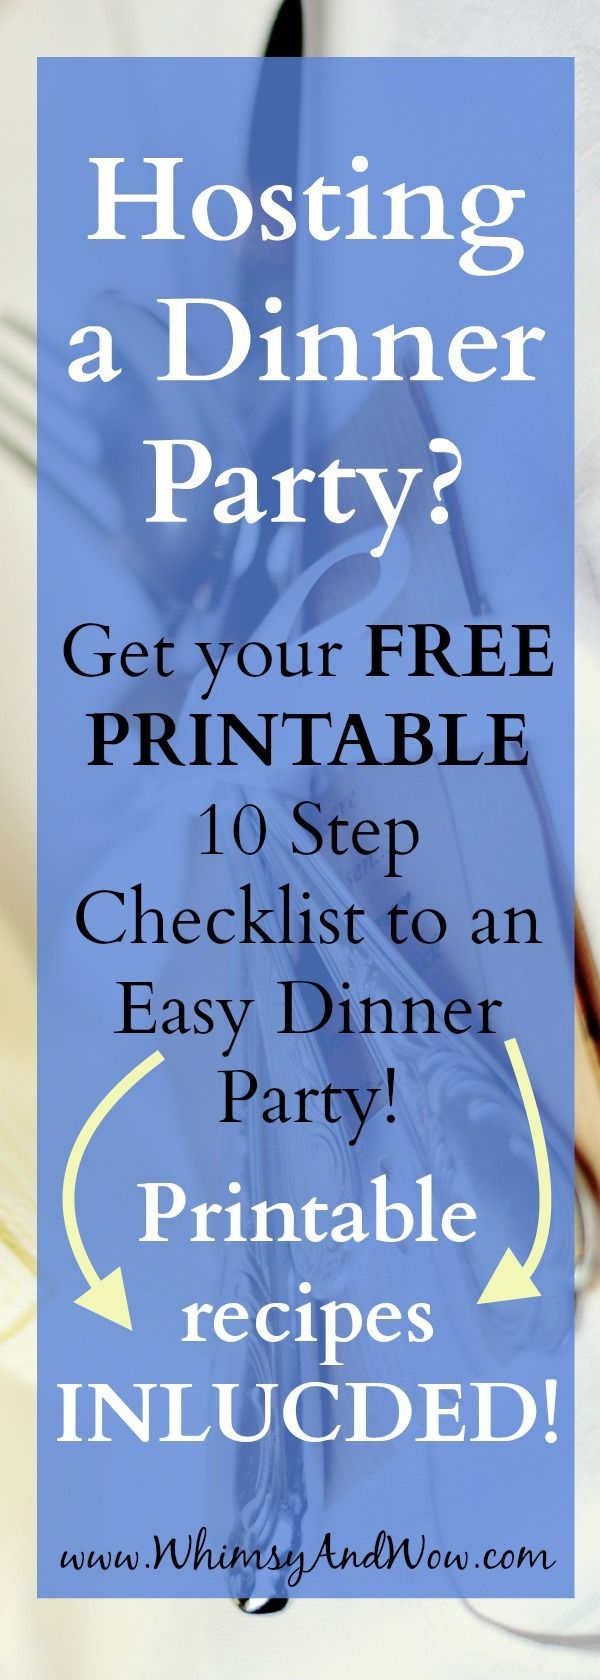 Get your PRINTABLE 10 step checklist for a no-stress Dinner Party with FREE PRINTABLE recipes included!